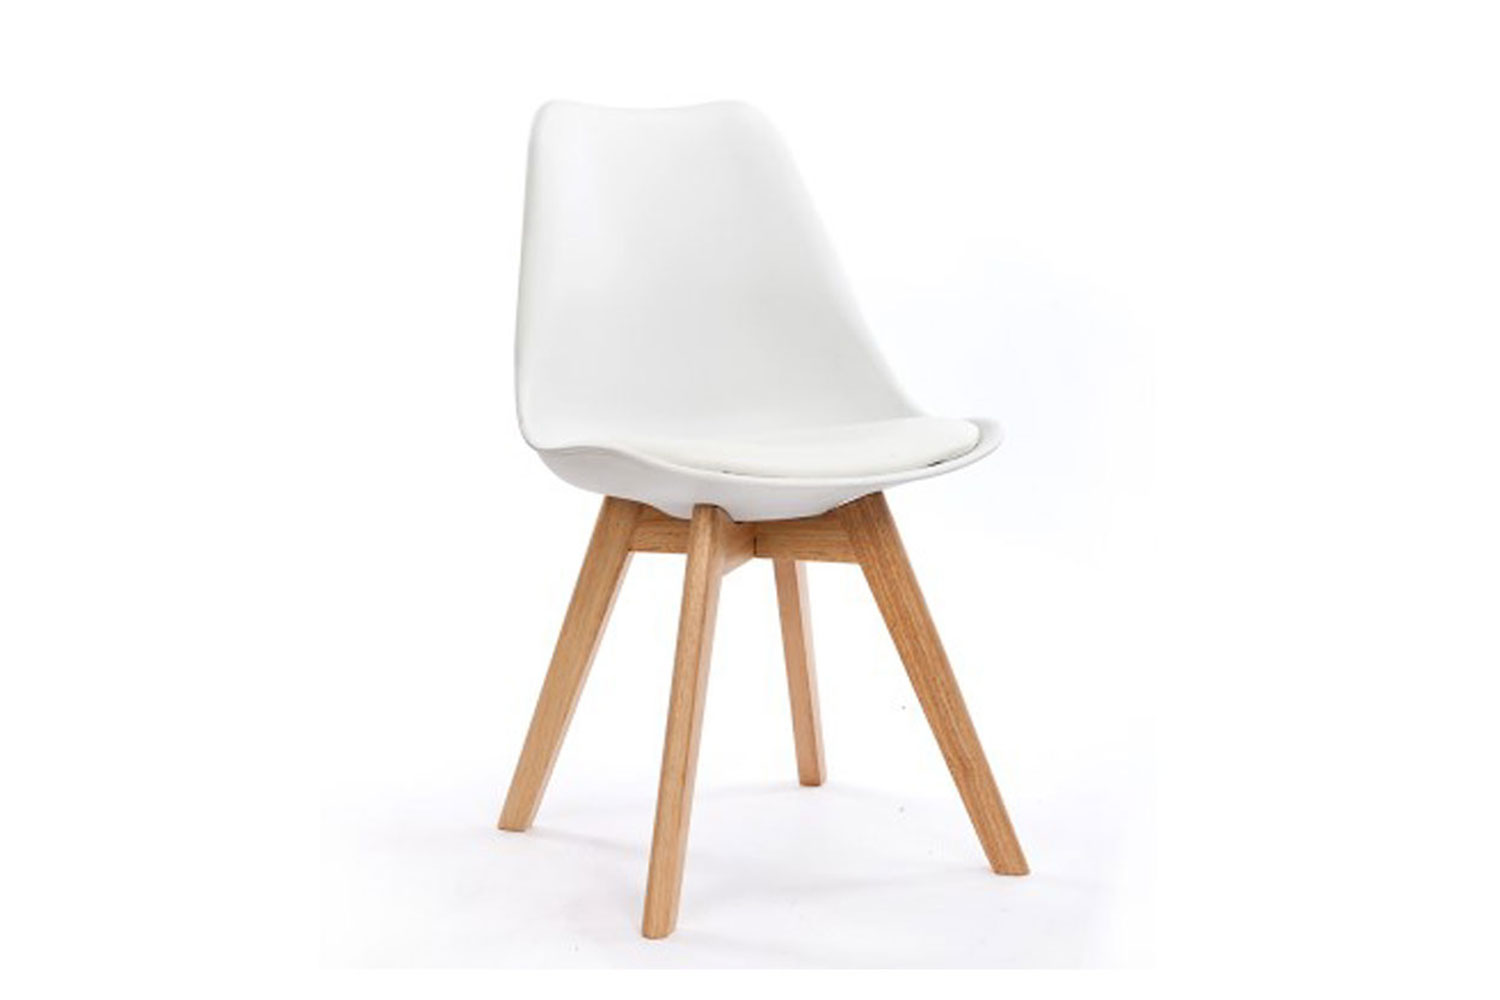 ergonomic chair harvey norman turquoise wingback stuka office white paulack furniture